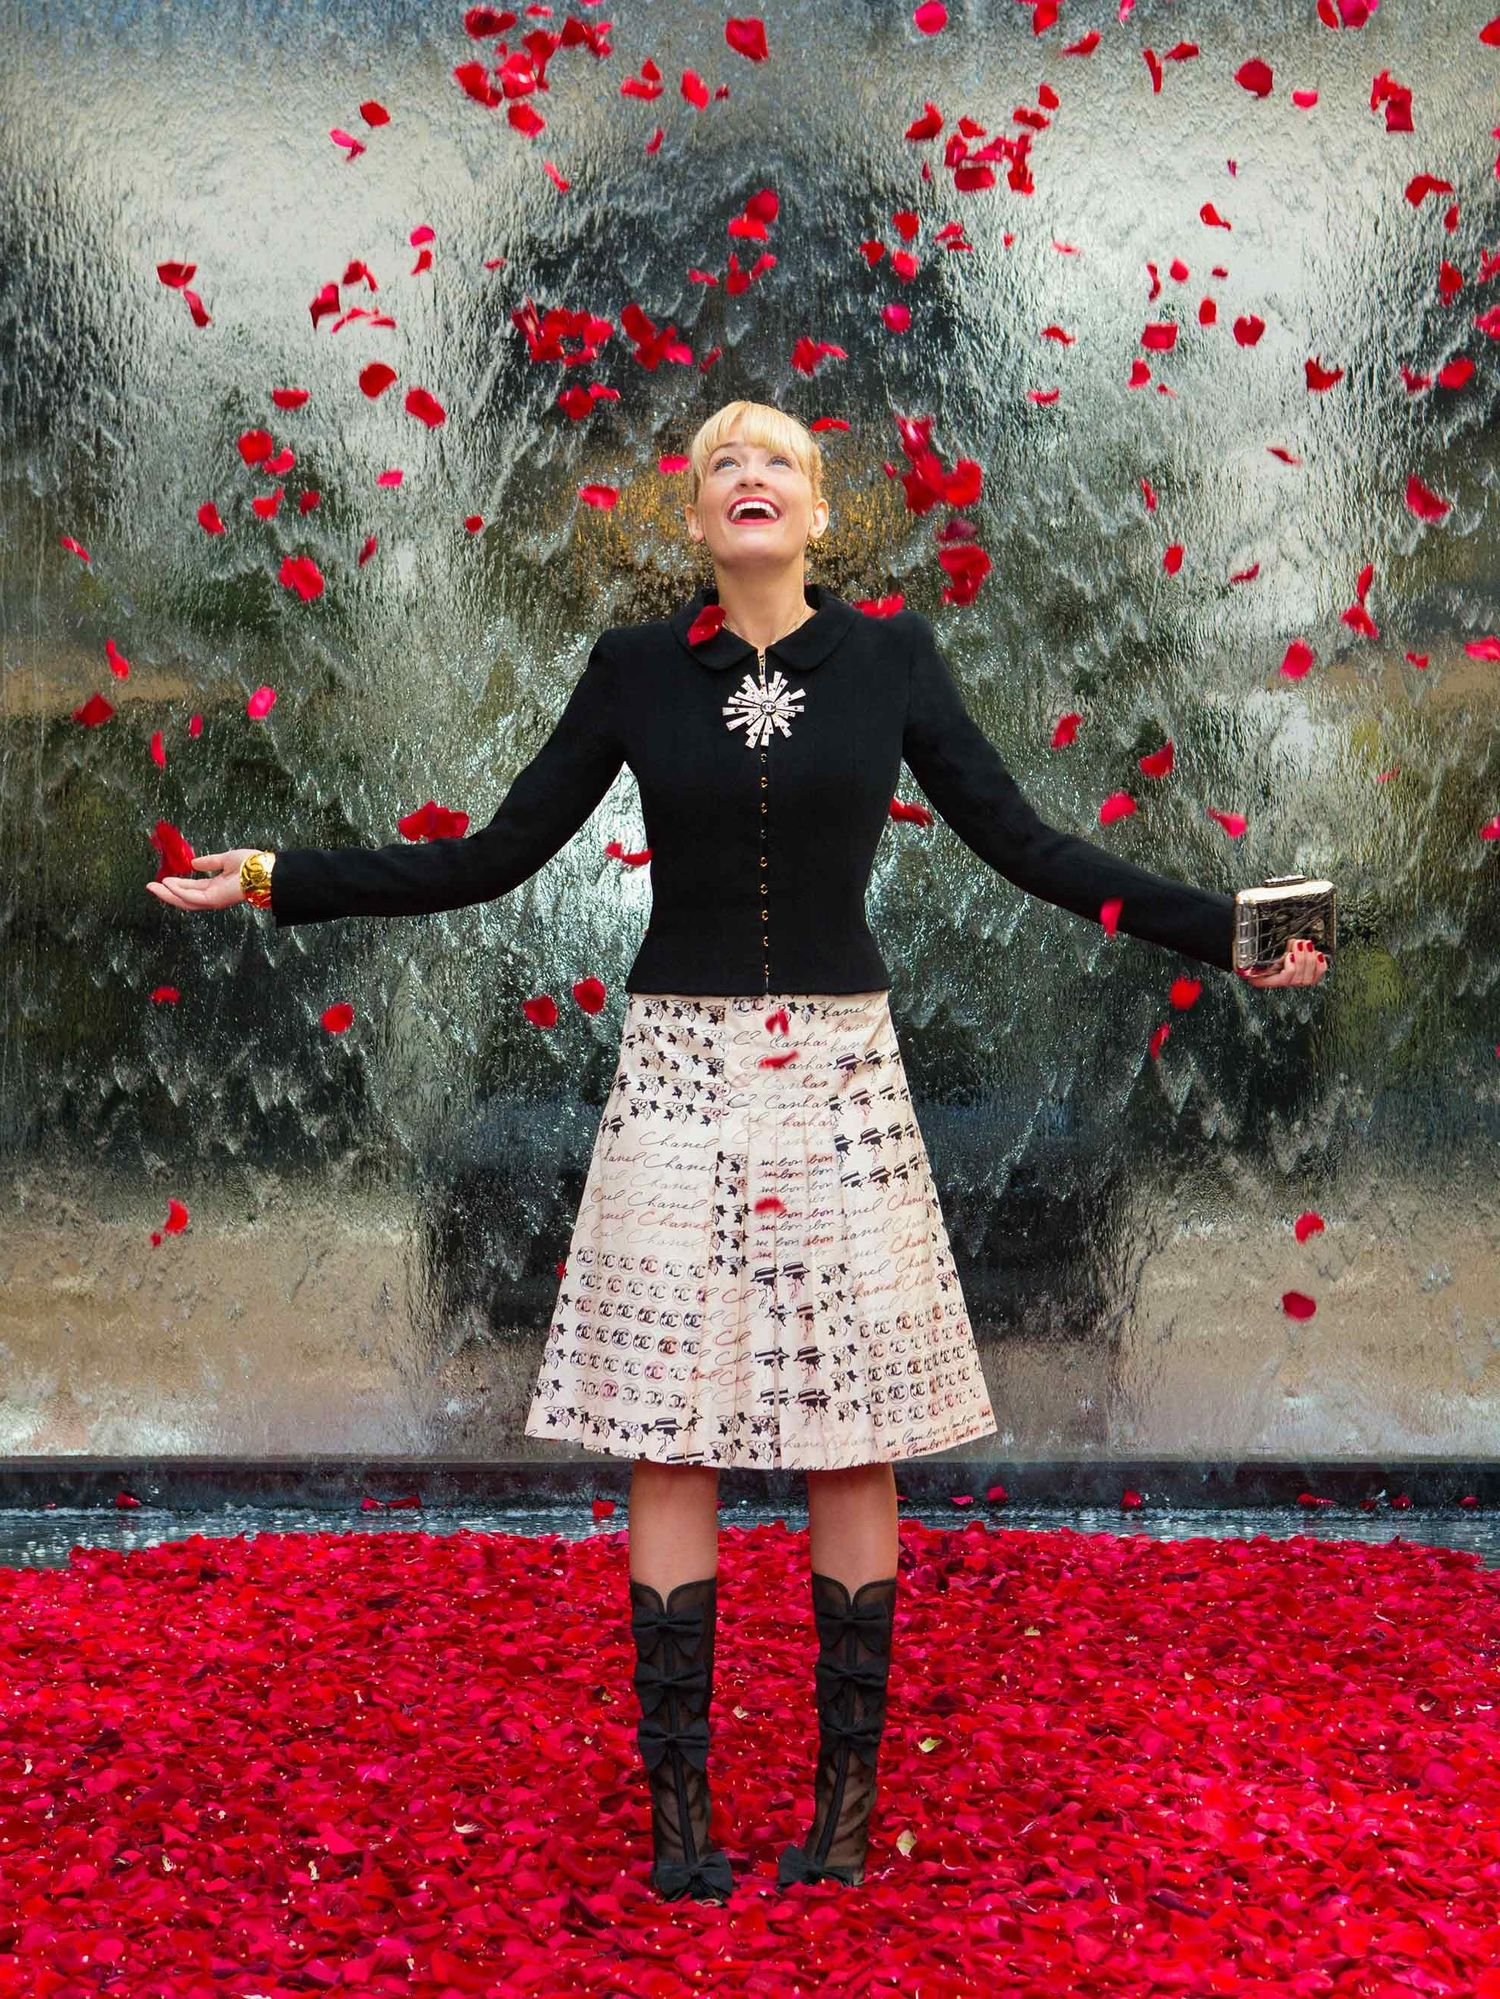 Beth Behrs of The Neighborhood with falling rose petals.